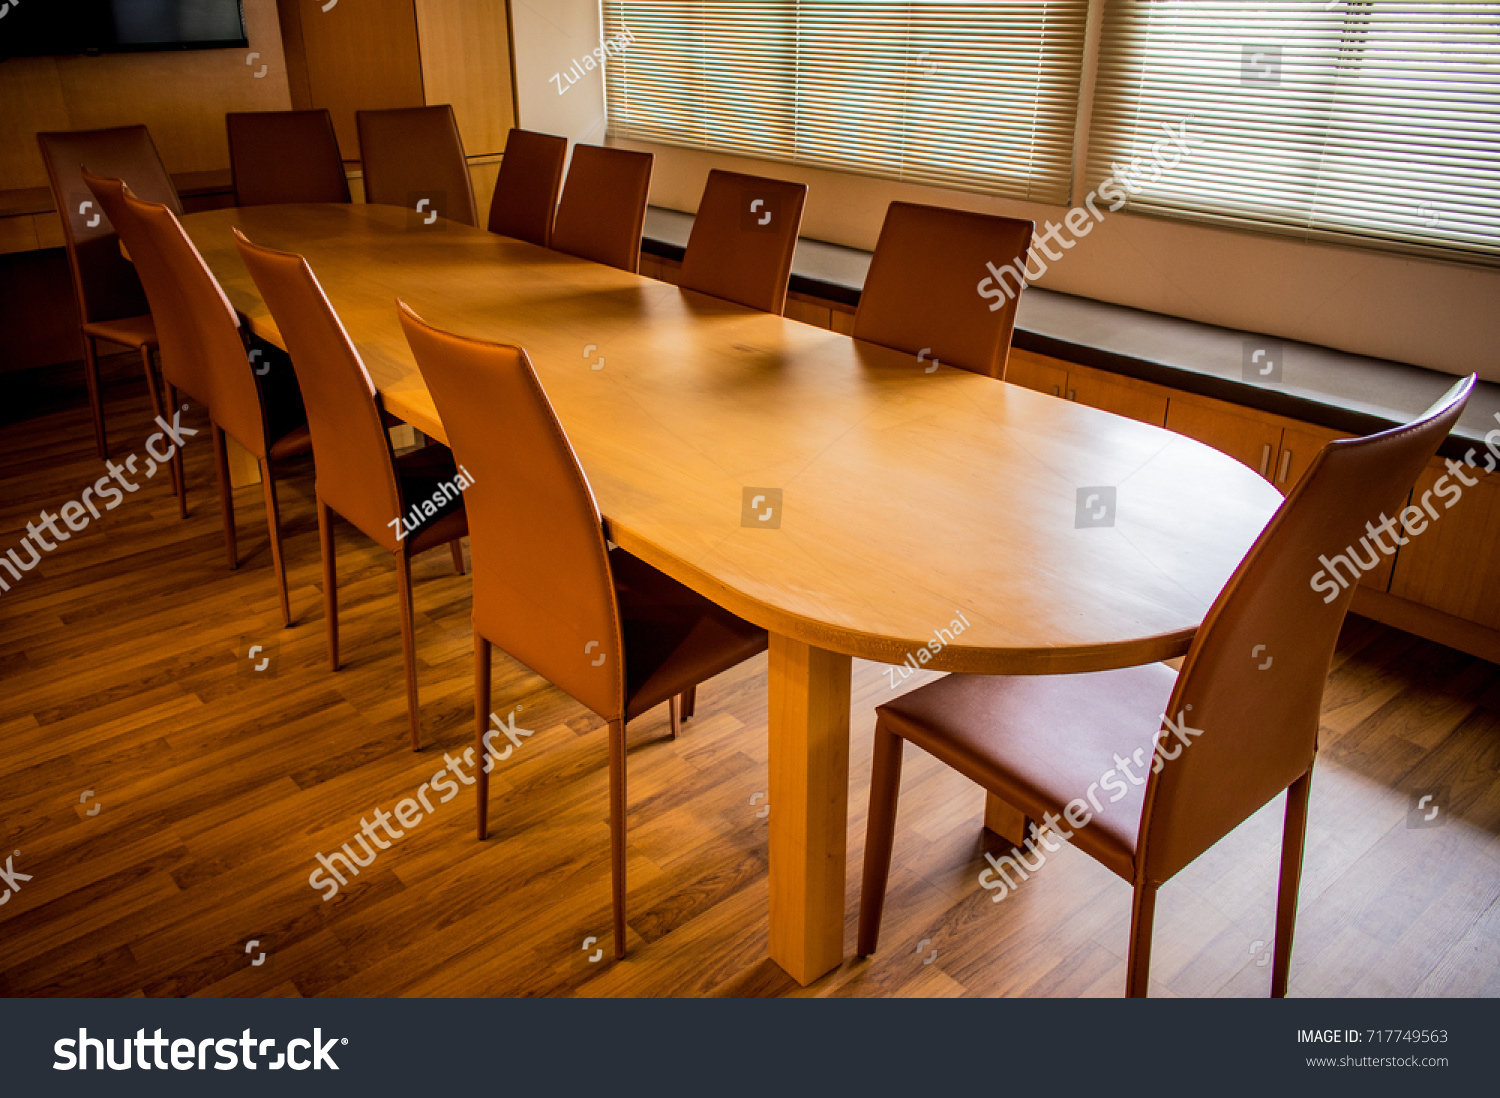 Empty Wooden Table Chairs Meeting Room Stock Photo 717749563   Shutterstock